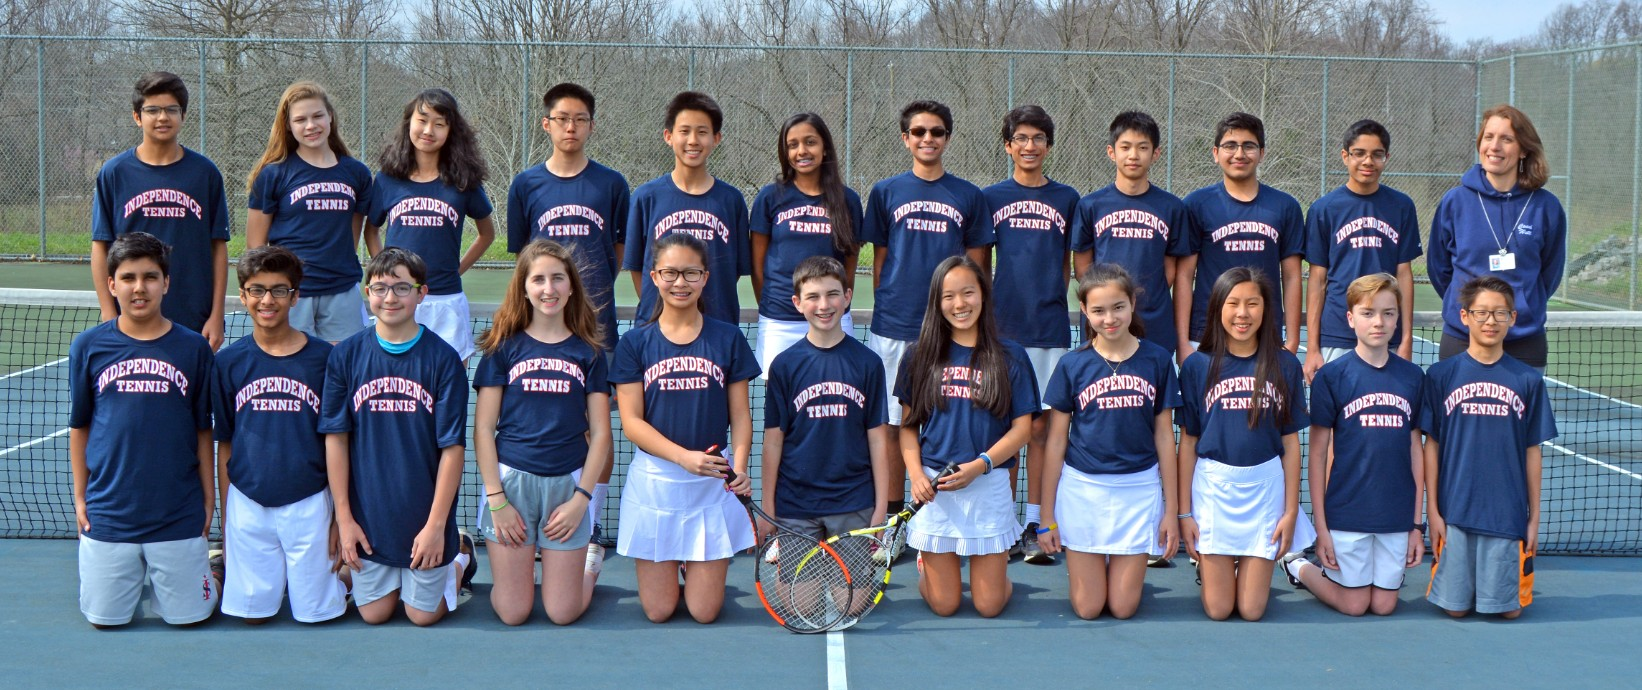 Tennis undefeated for 7th season in a row